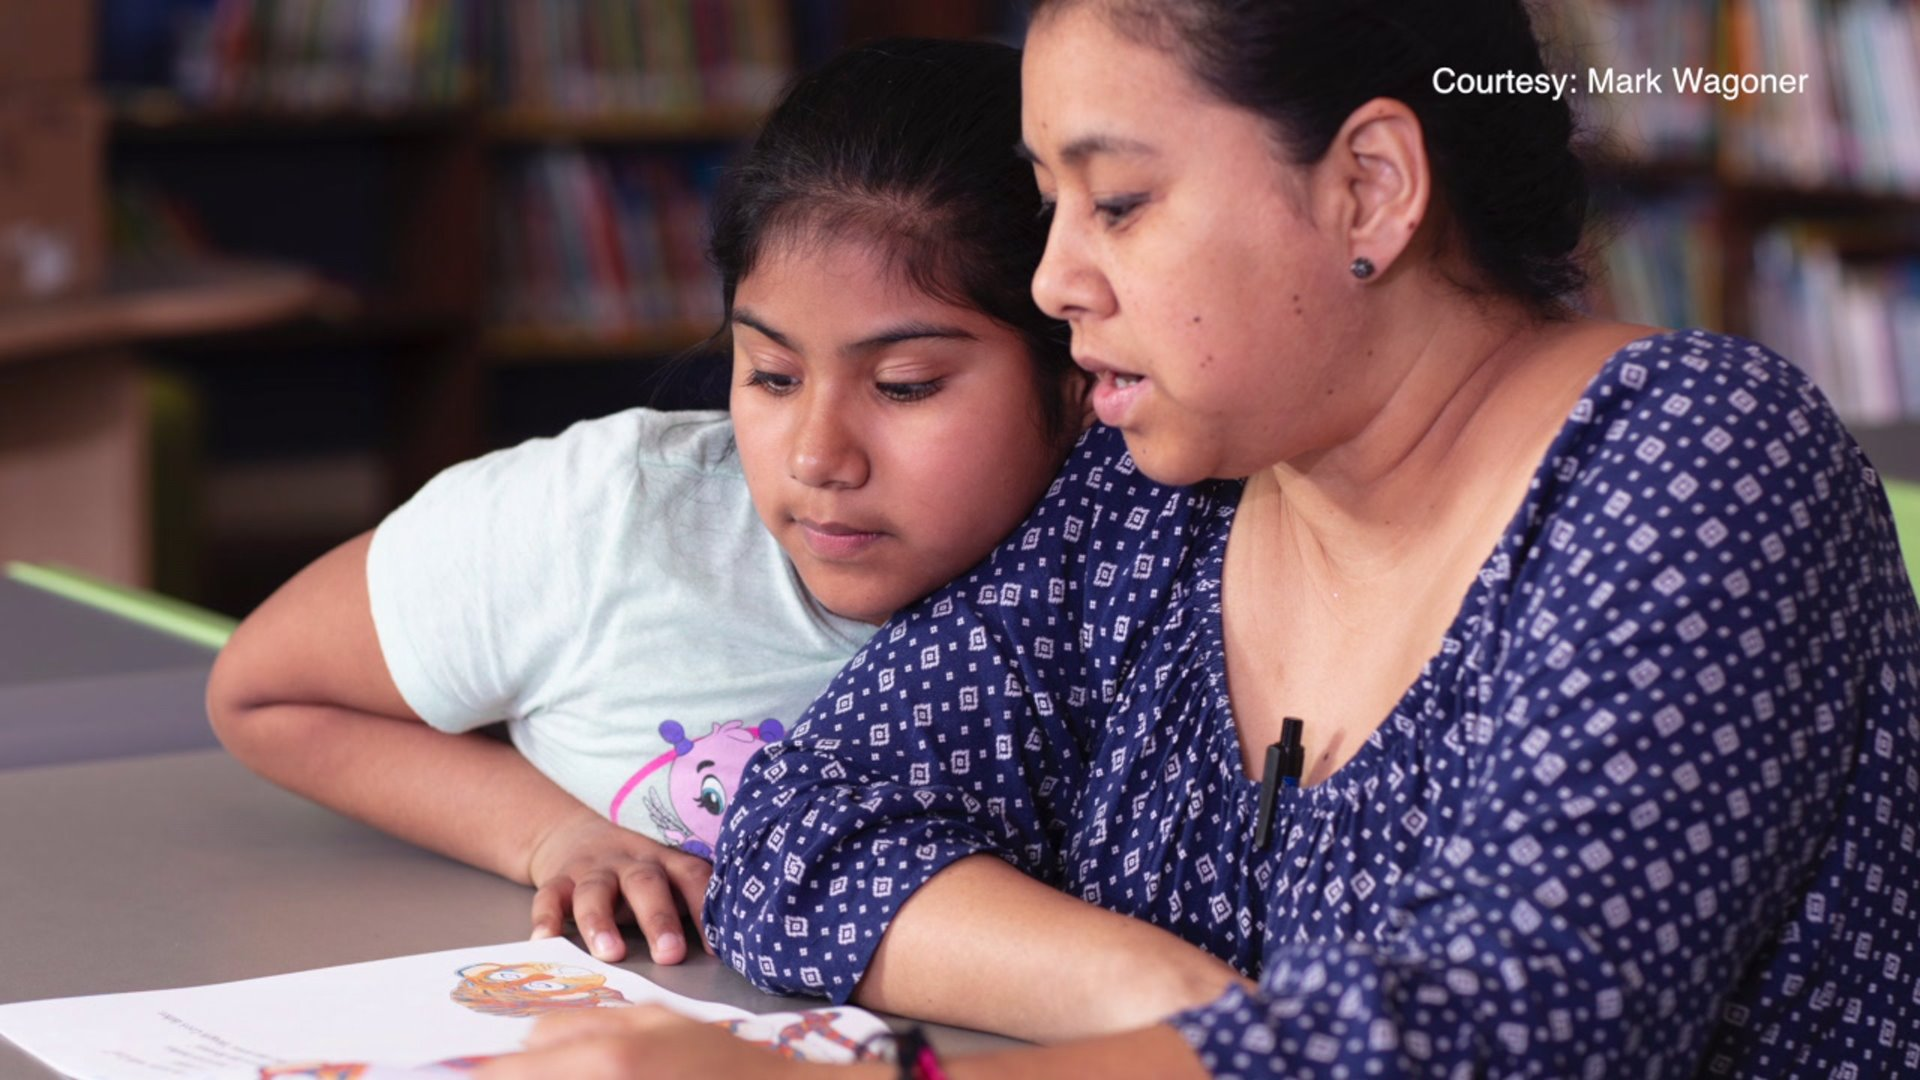 Reading is a fundamental skill that too many adults in our community lack. Reading Connections is on a mission to change that.